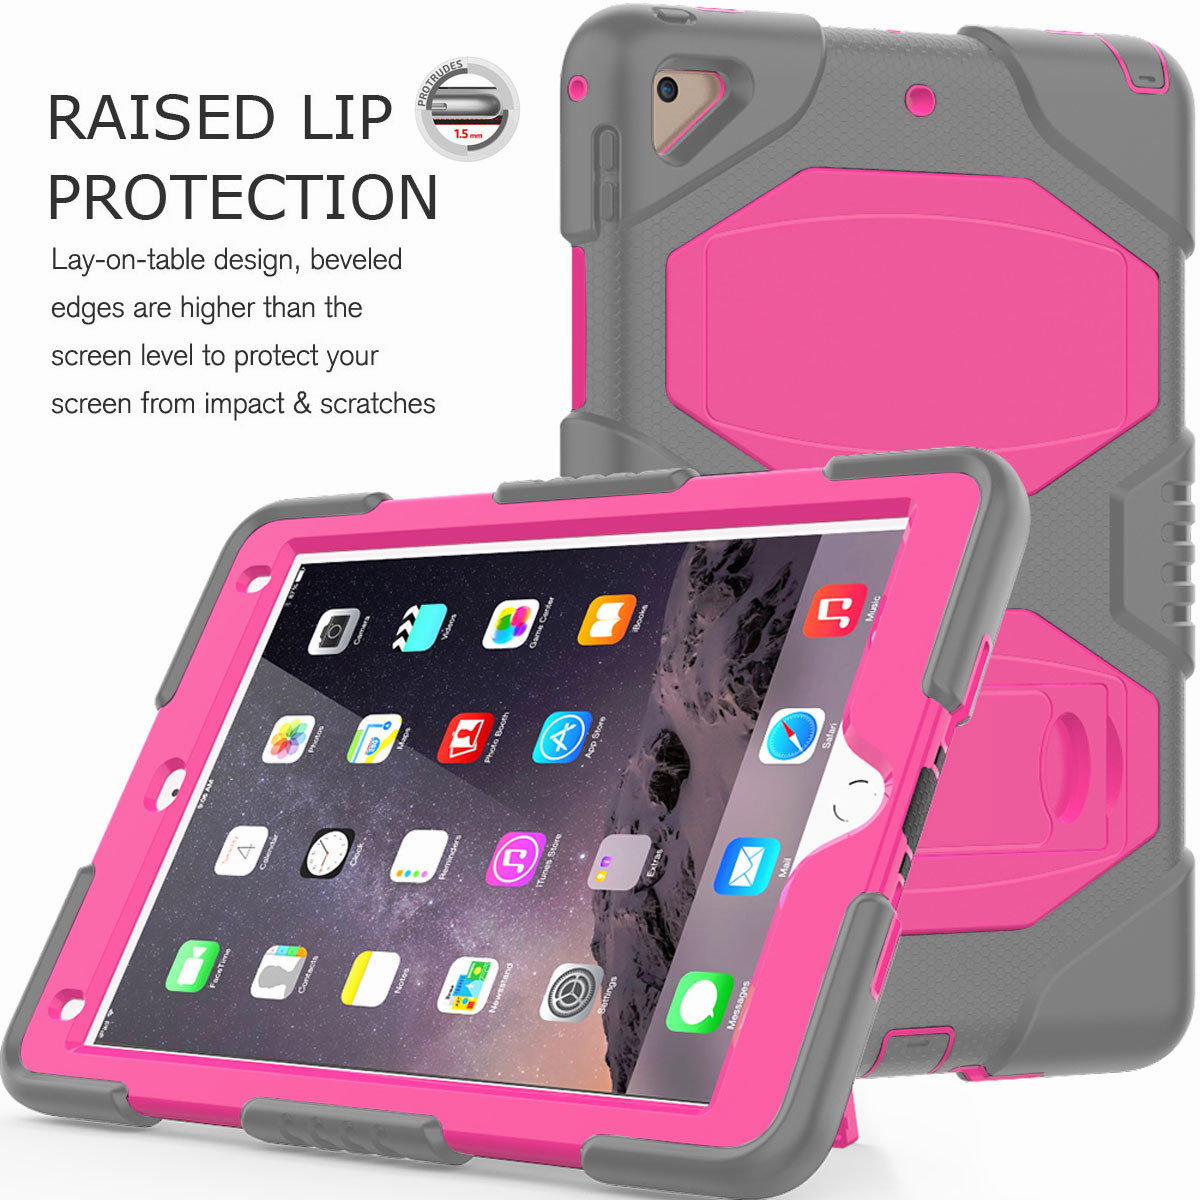 Hybrid-Rubber-Heavy-Duty-Shockproof-Case-Cover-For-iPad-9-7-6th-Generation-2018 thumbnail 51